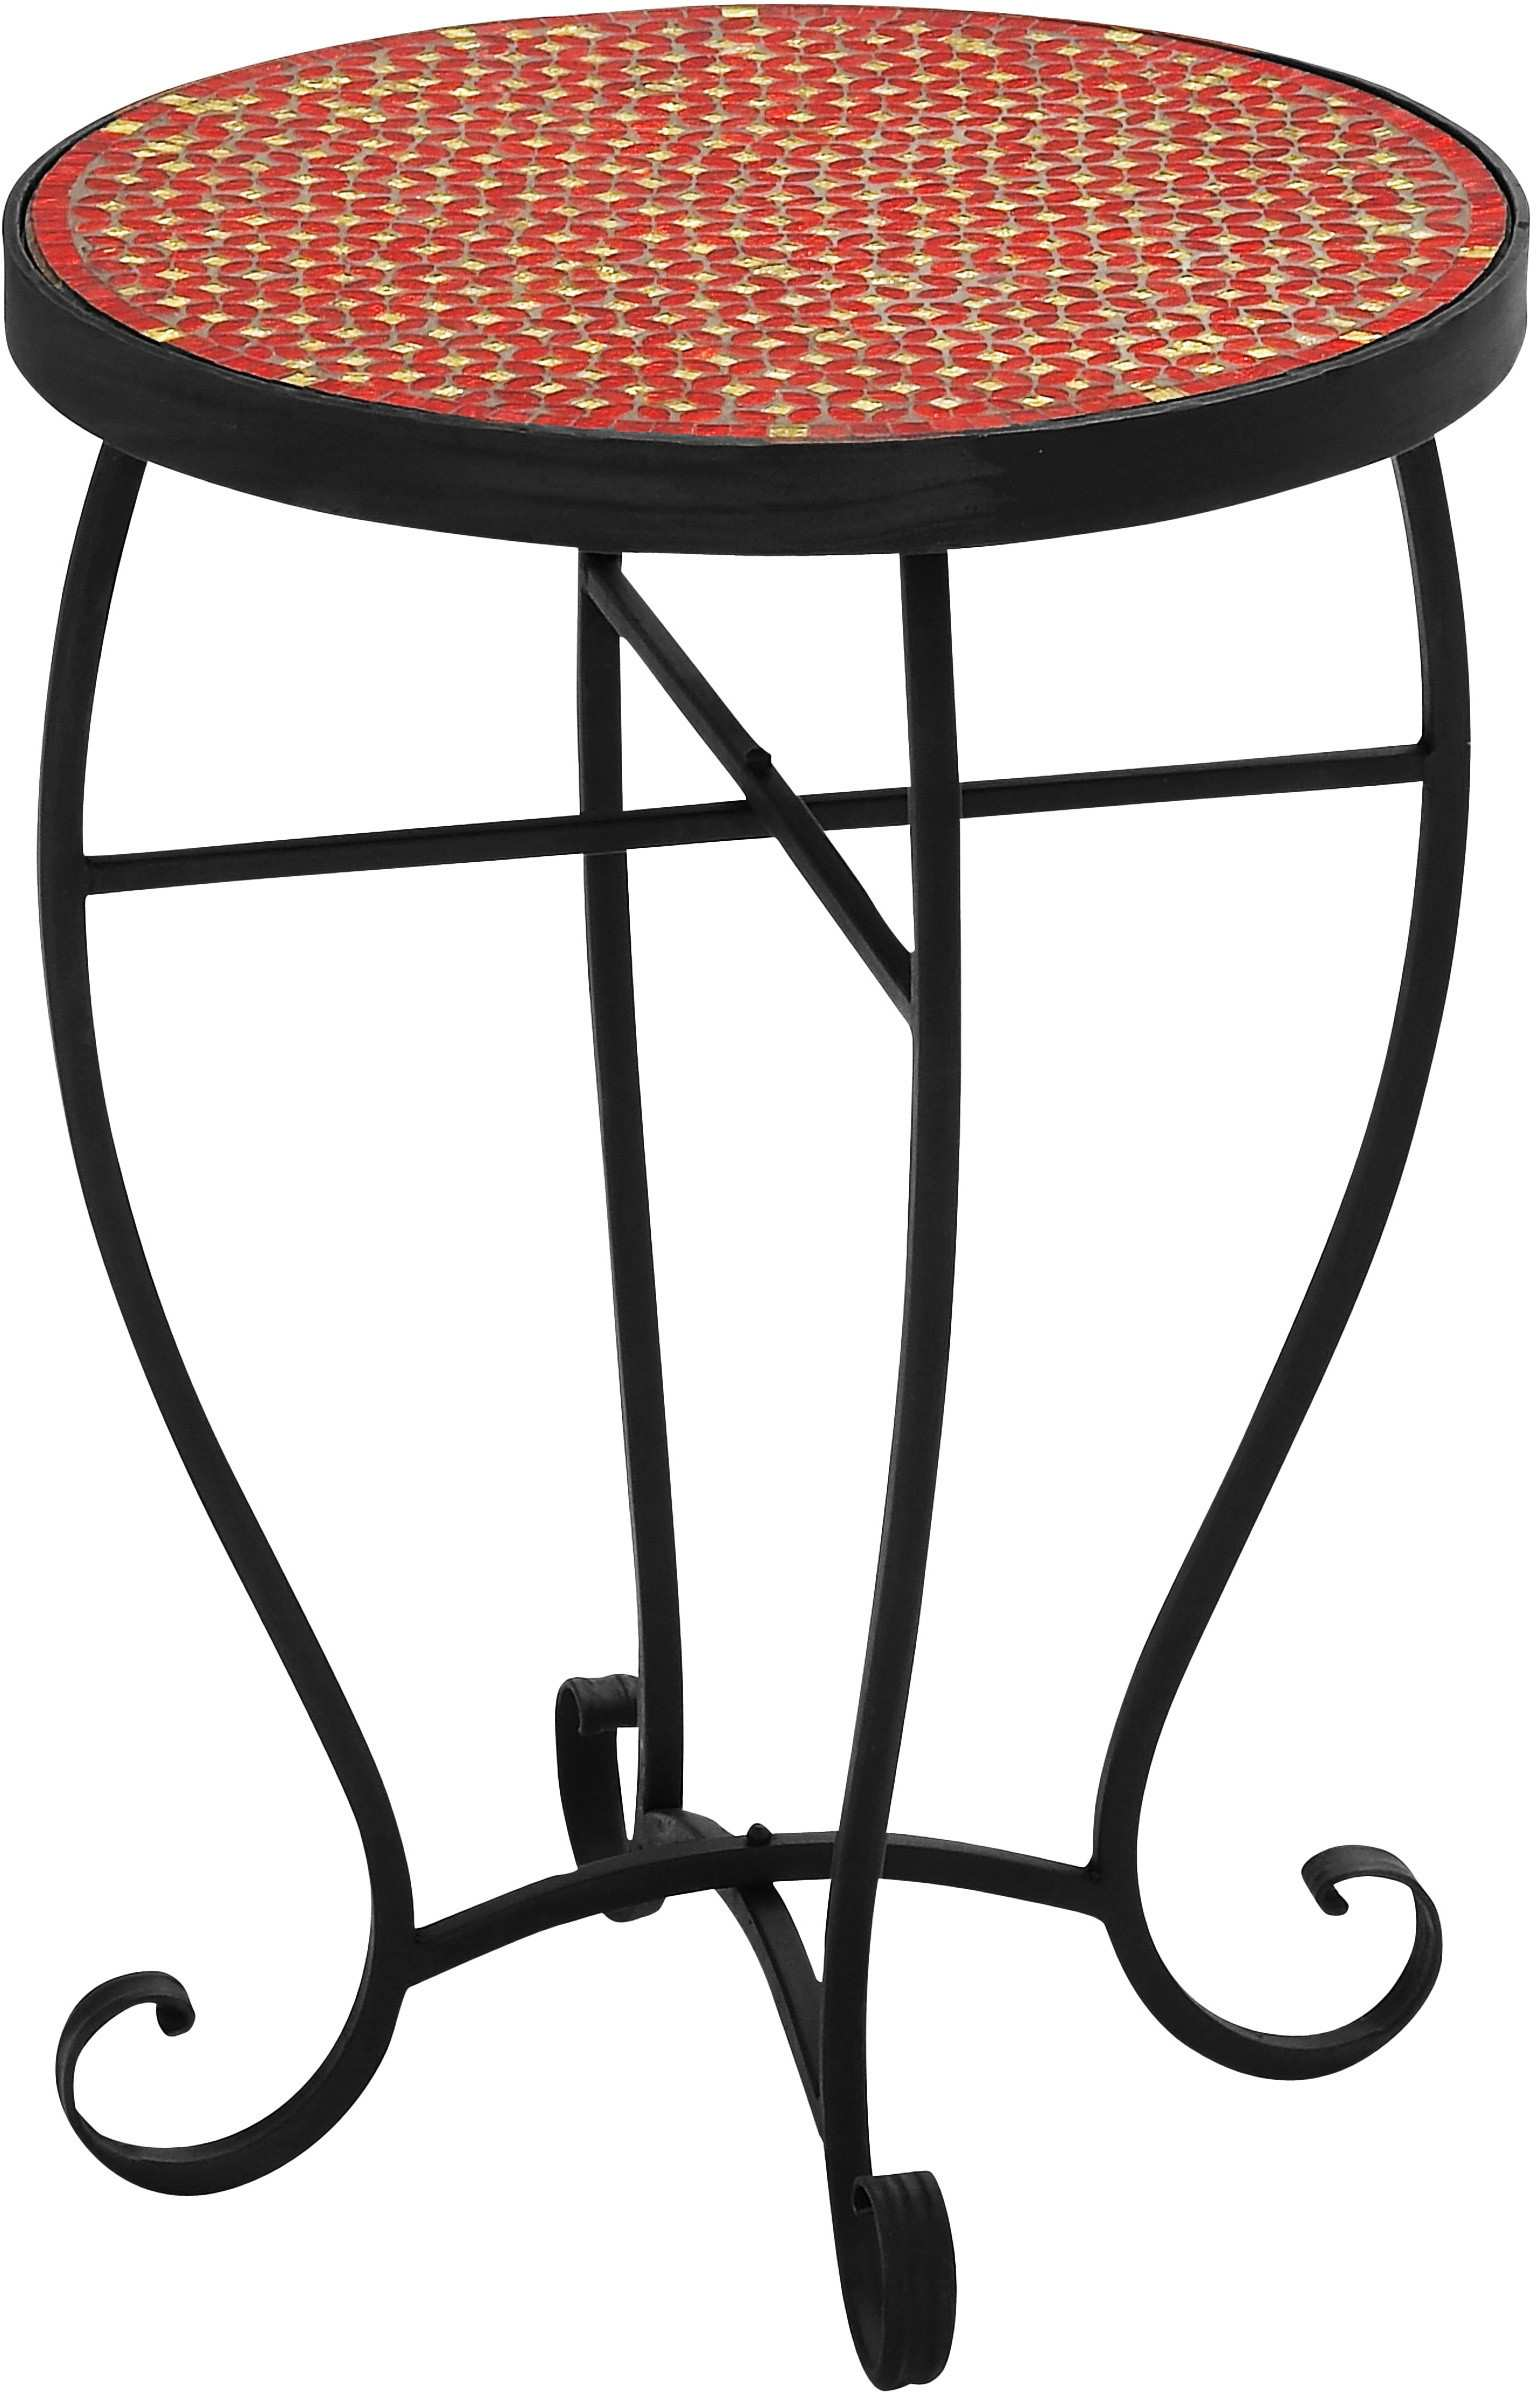 elegant mosaic outdoor side table for color fusion square inspiring accent red round indoor end wood block designs target clocks wicker oval patio top west elm deck coastal